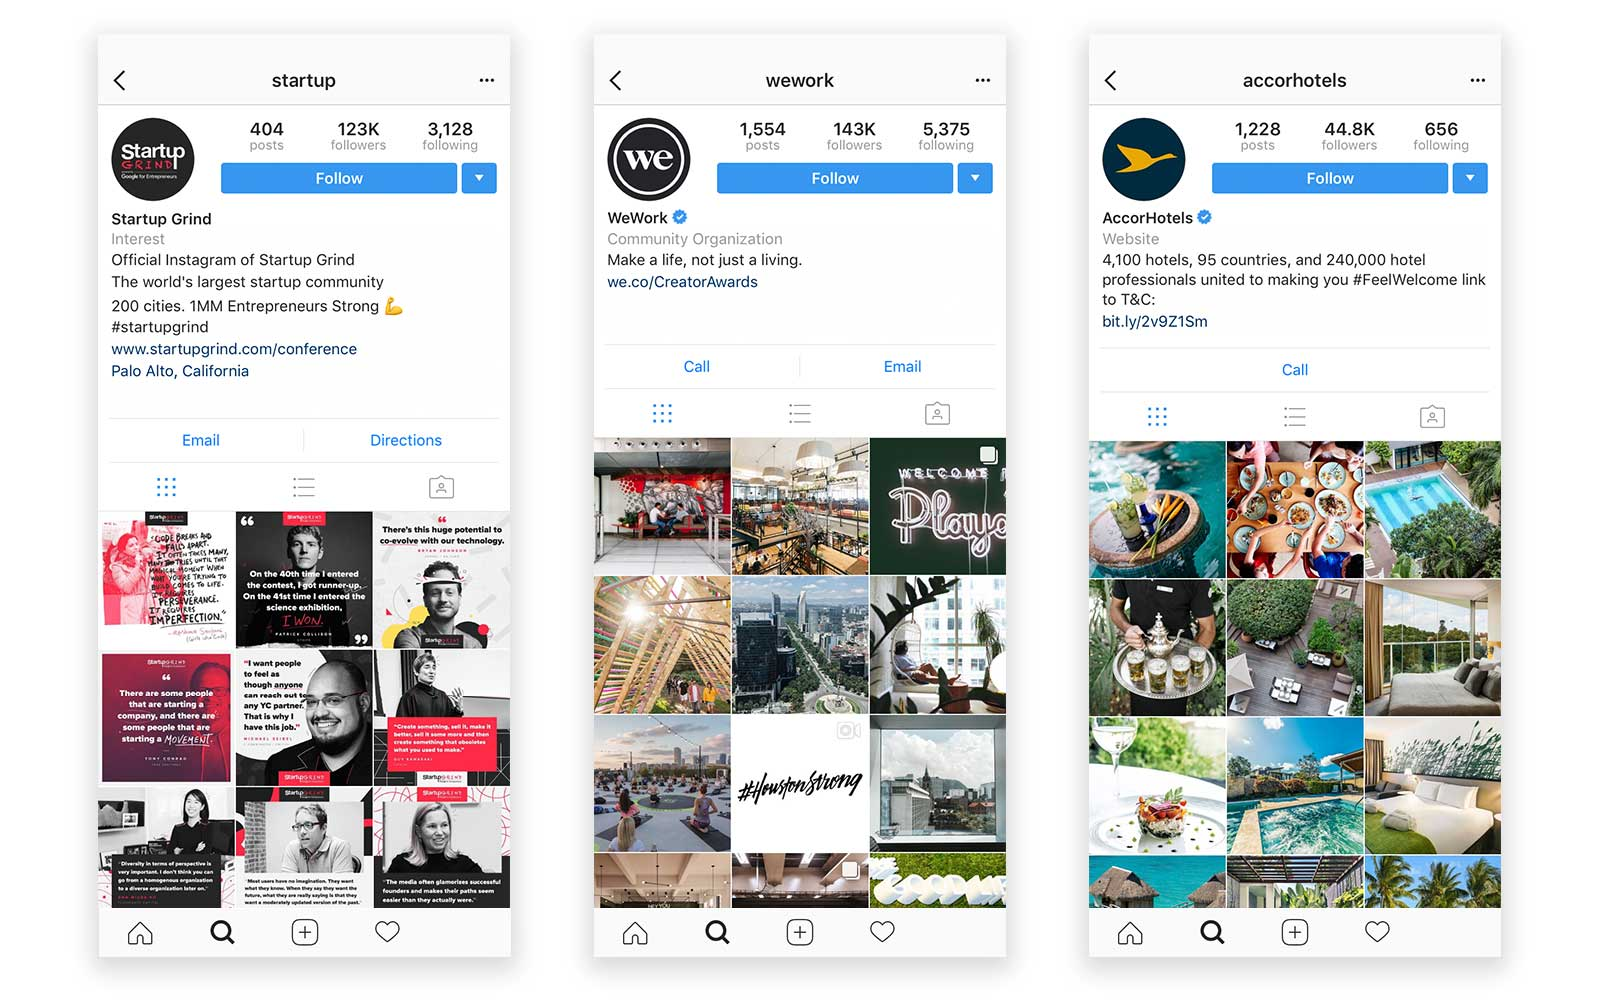 instagram accounts startupgrind wework accorhotels